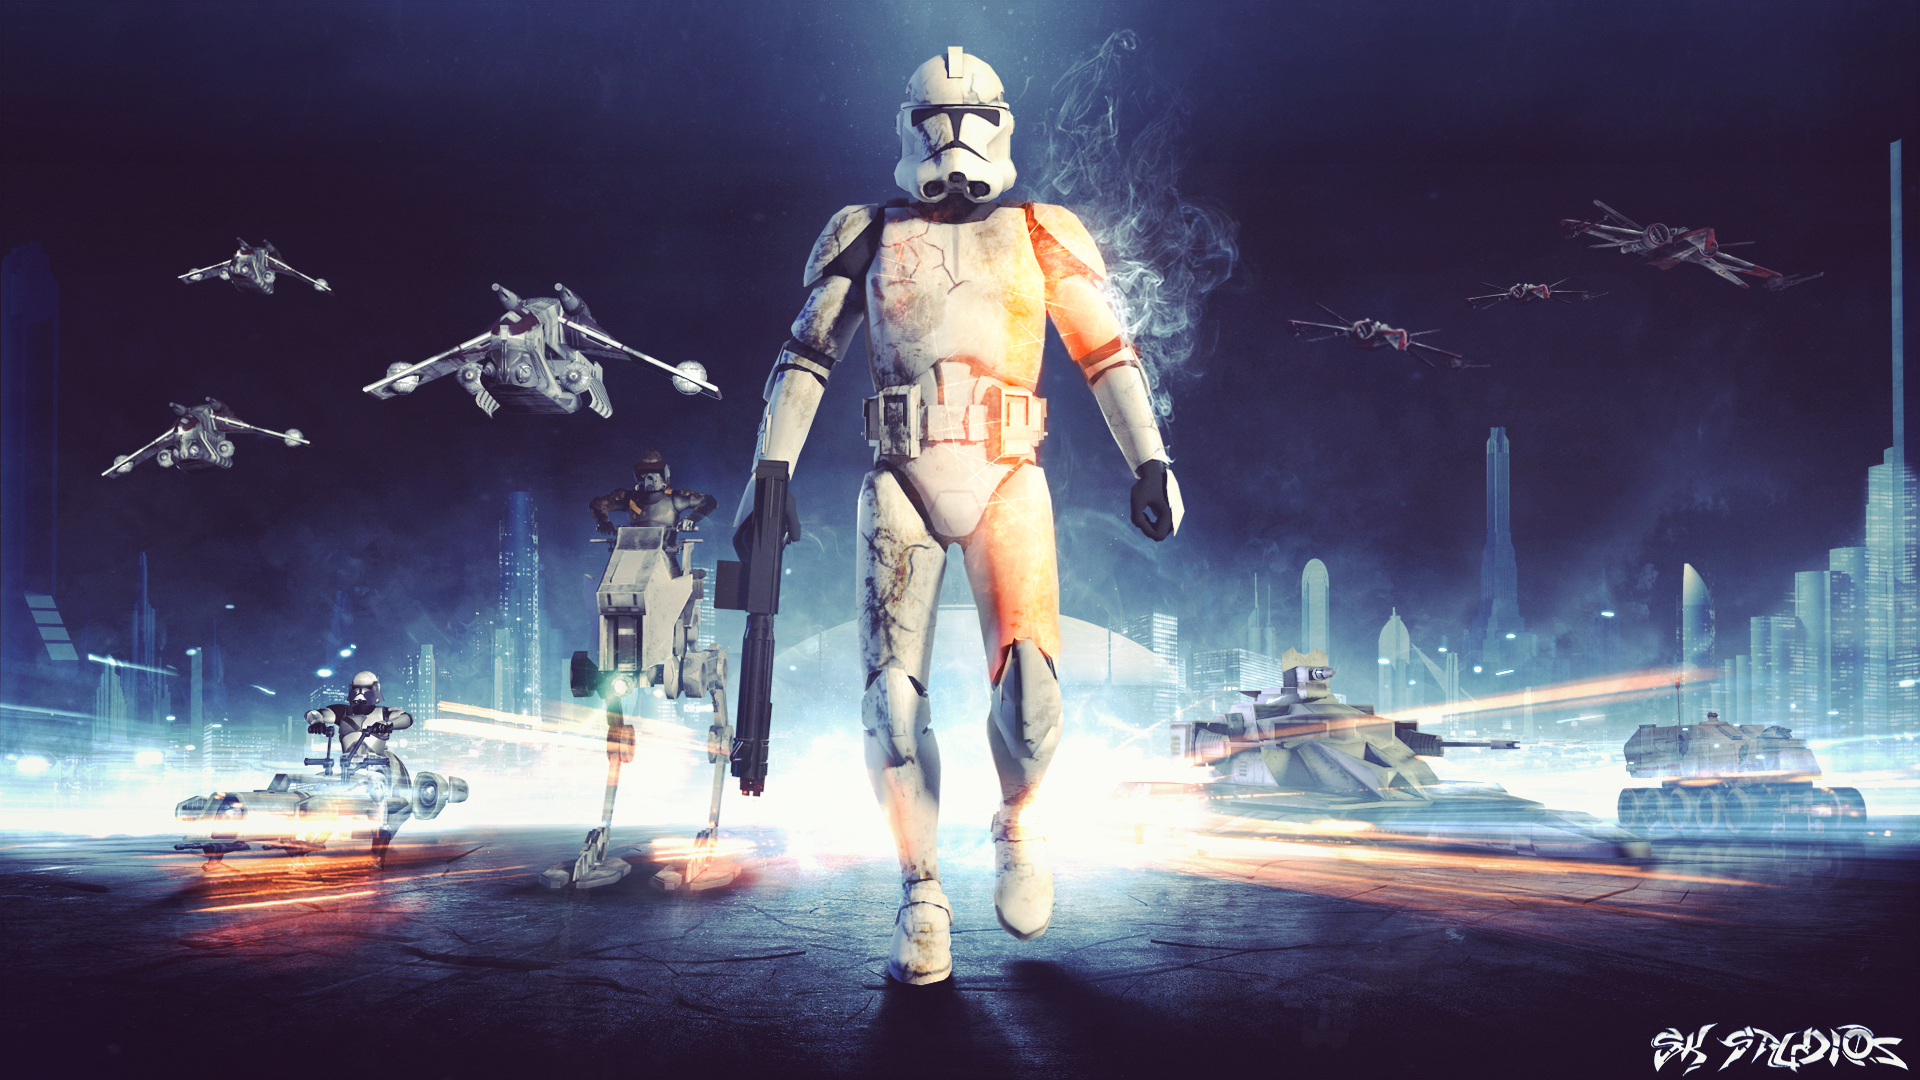 Star Wars Battlefront 3 Wallpaper